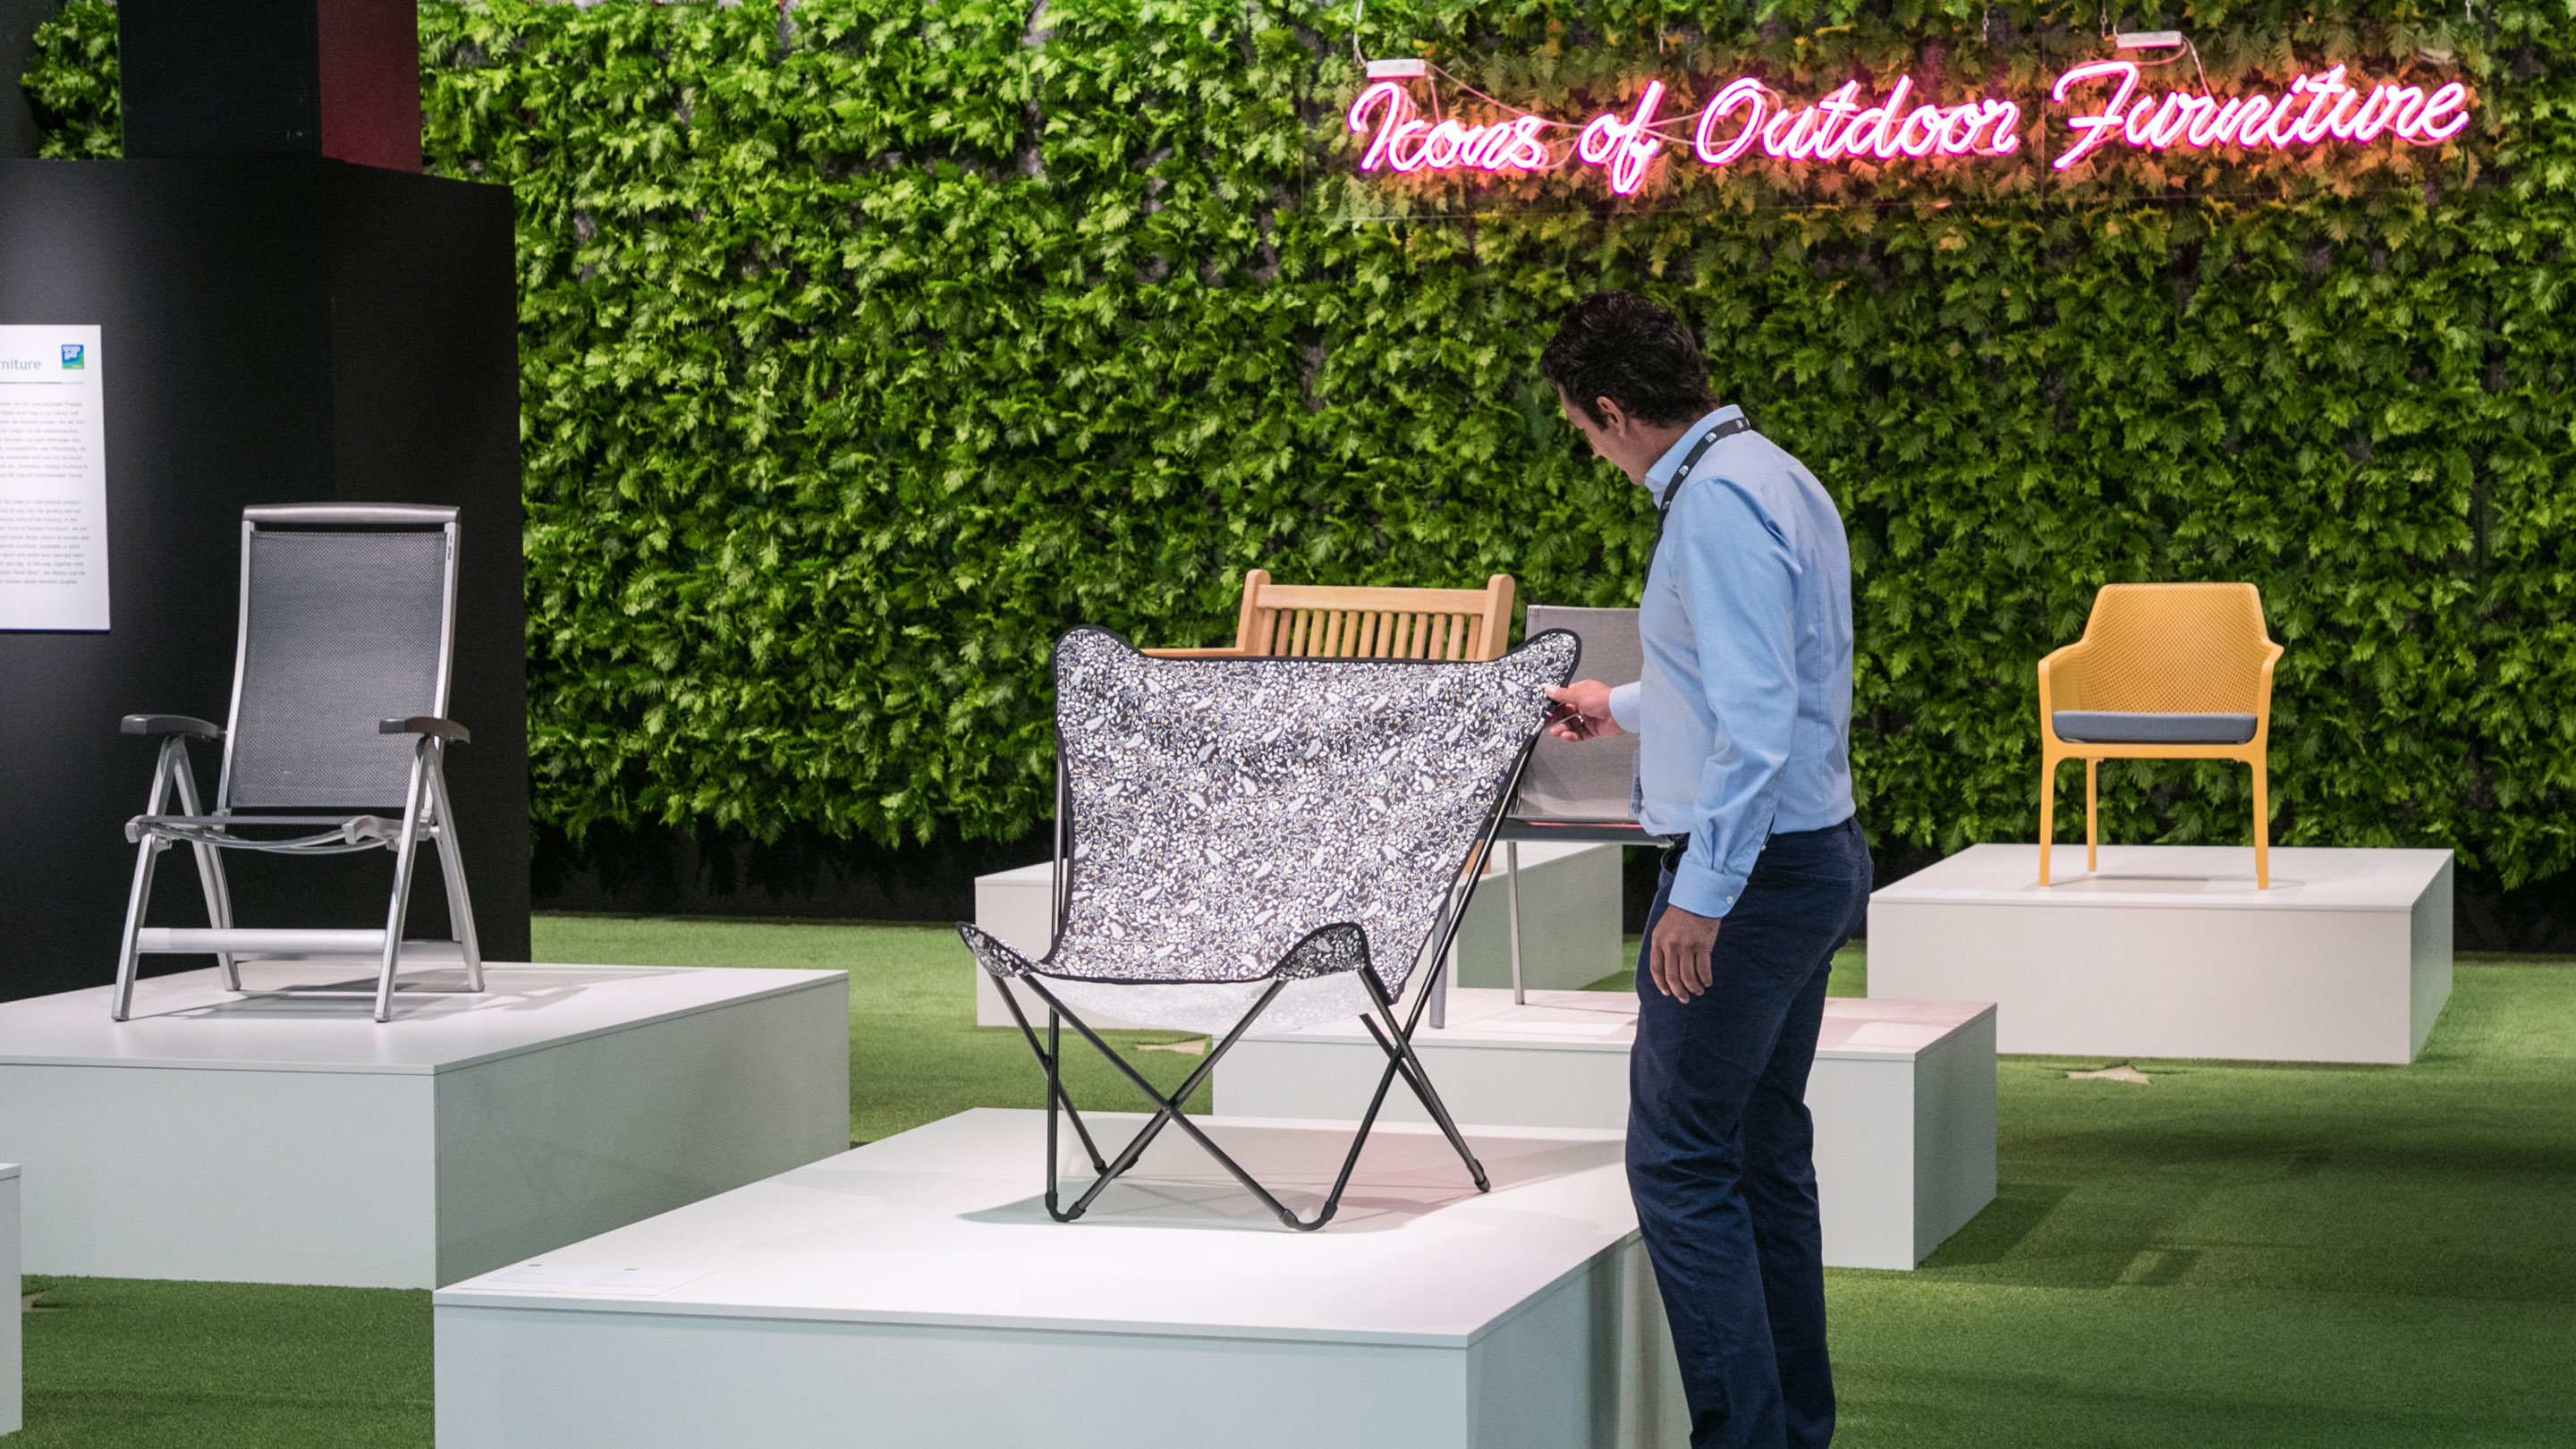 Icons of Outdoor Furniture, Halle 10.2, spoga + gafa 2019